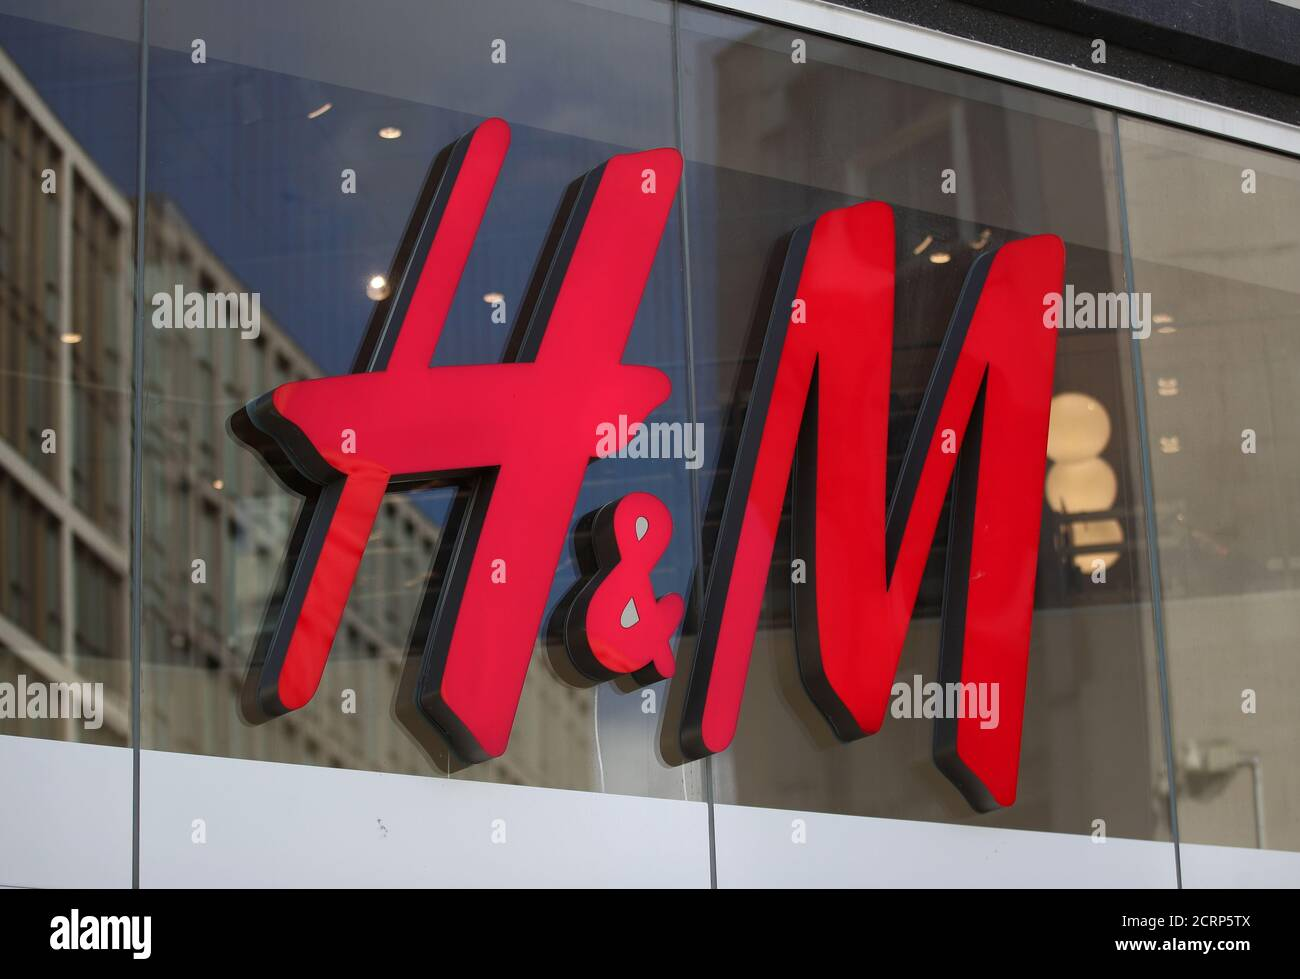 H M Clothes Shop In Sheffield South Yorkhire Photo Credit Should Read Tim Goode Pa Wire Stock Photo Alamy